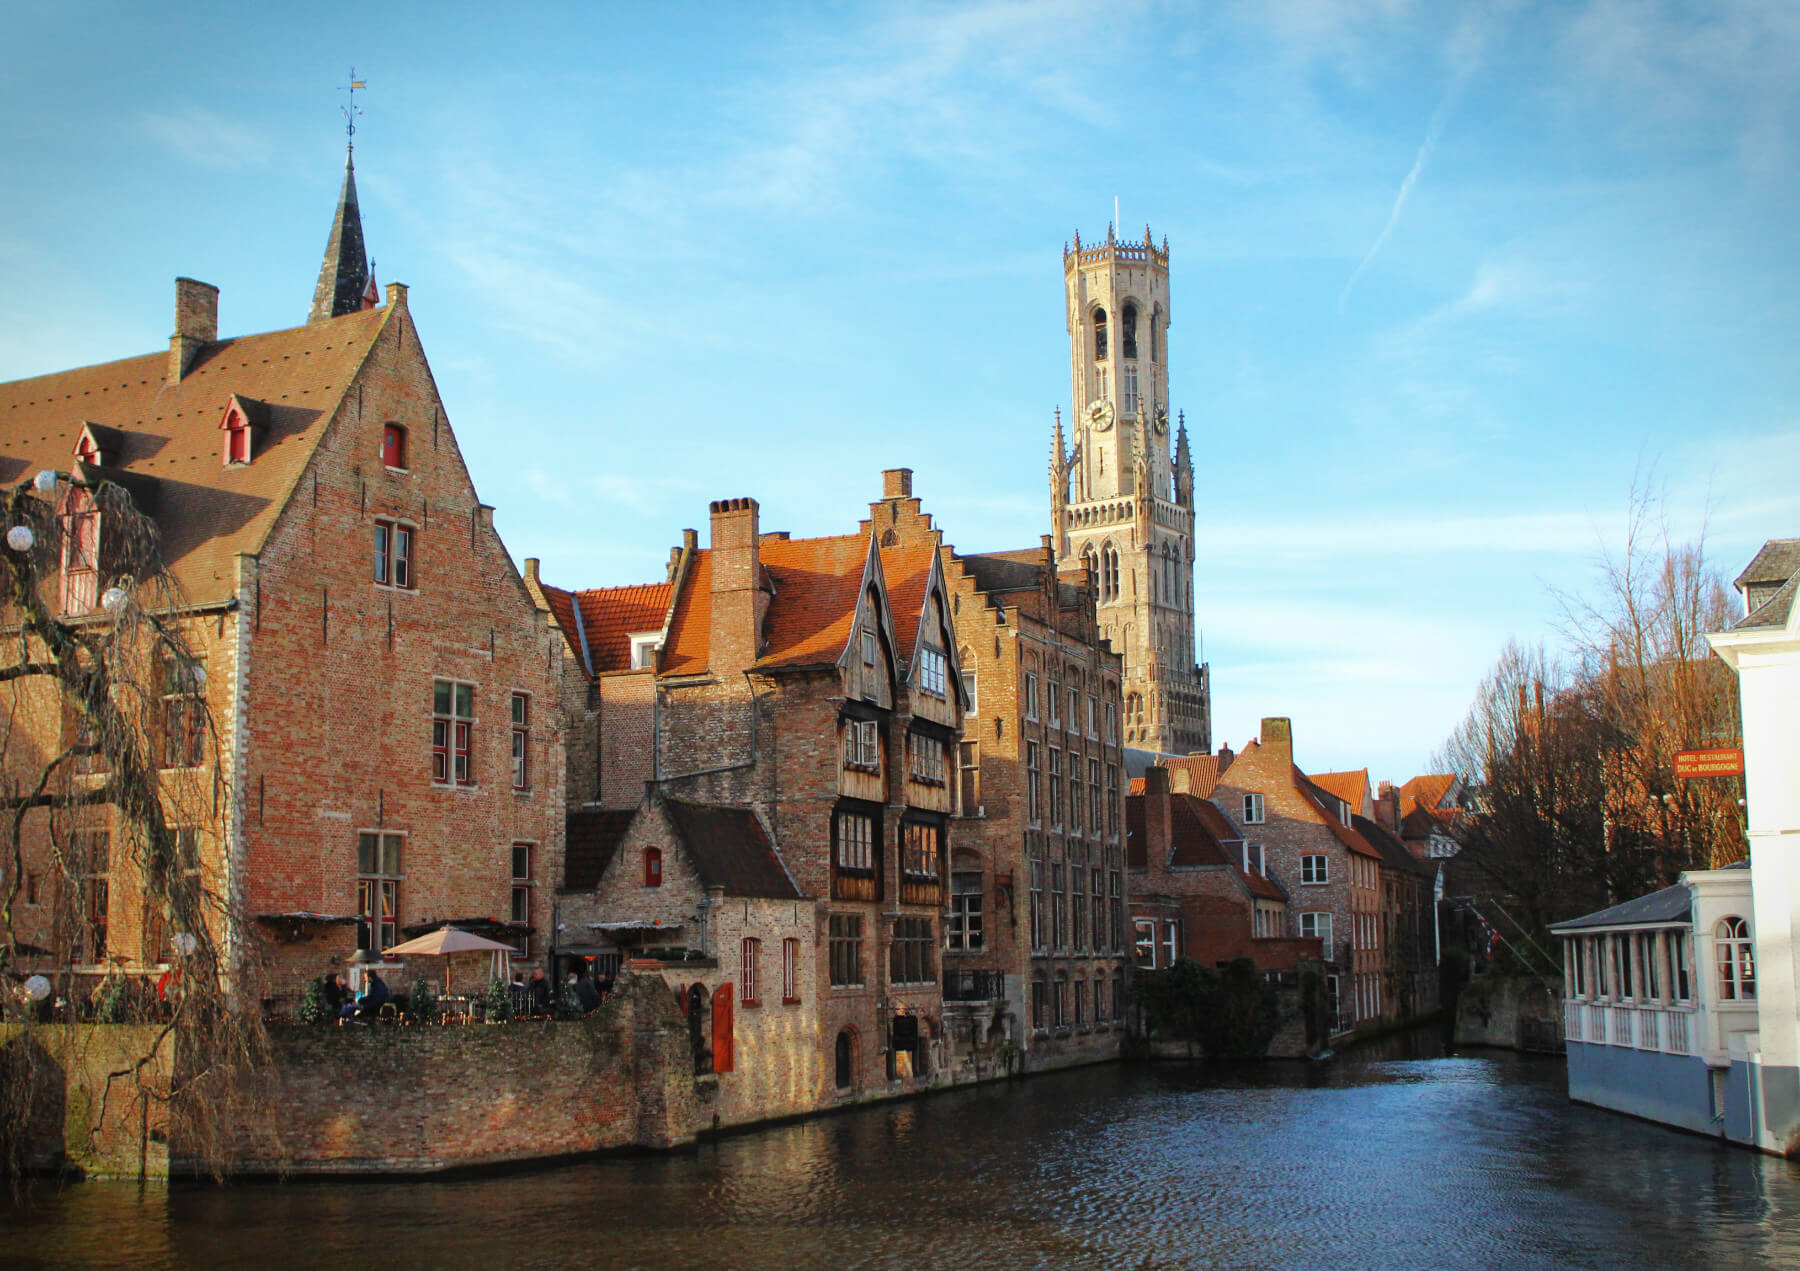 Picturesque Brugges, Belgium is a fantastic medieval town that isn't to be missed when visiting Belgium.